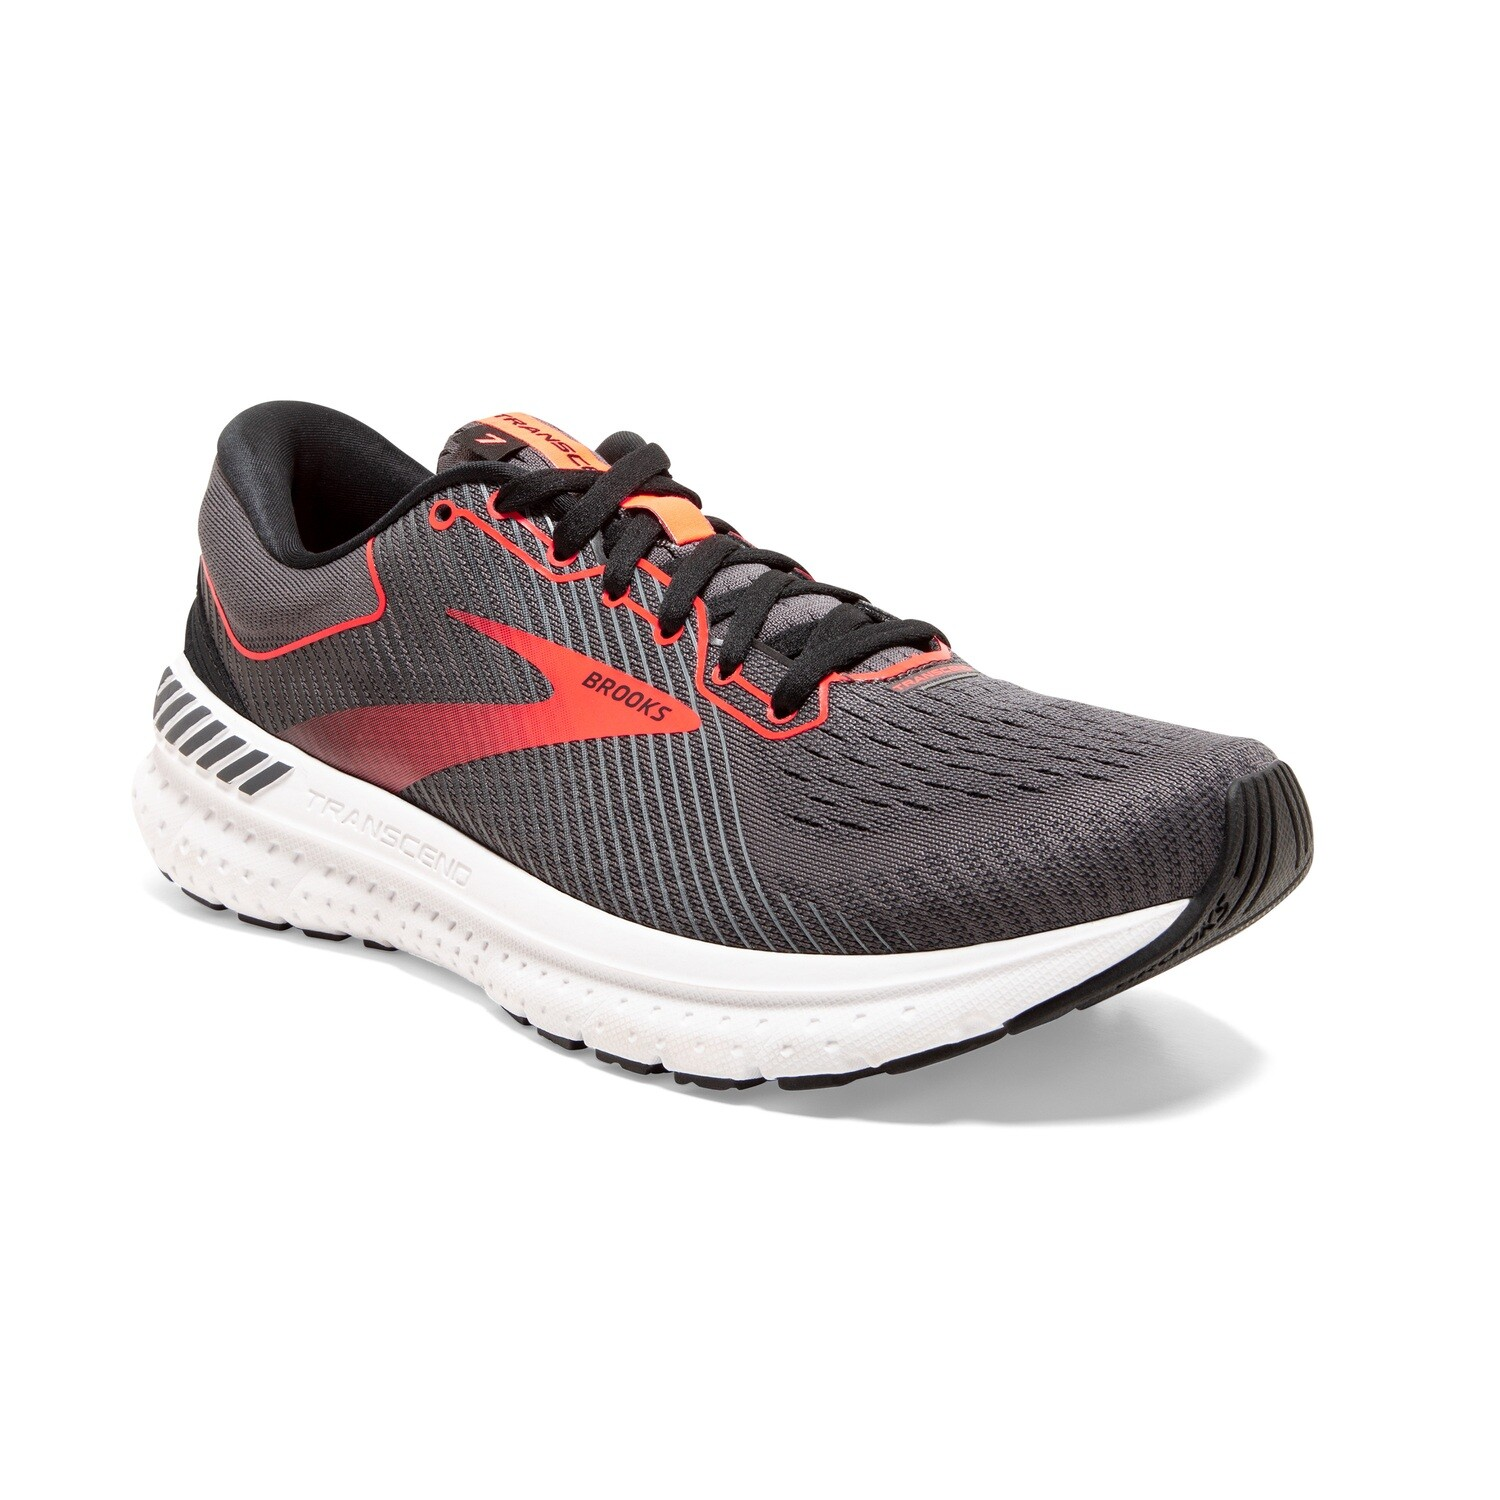 Brooks Transcend 7 - Premium Support